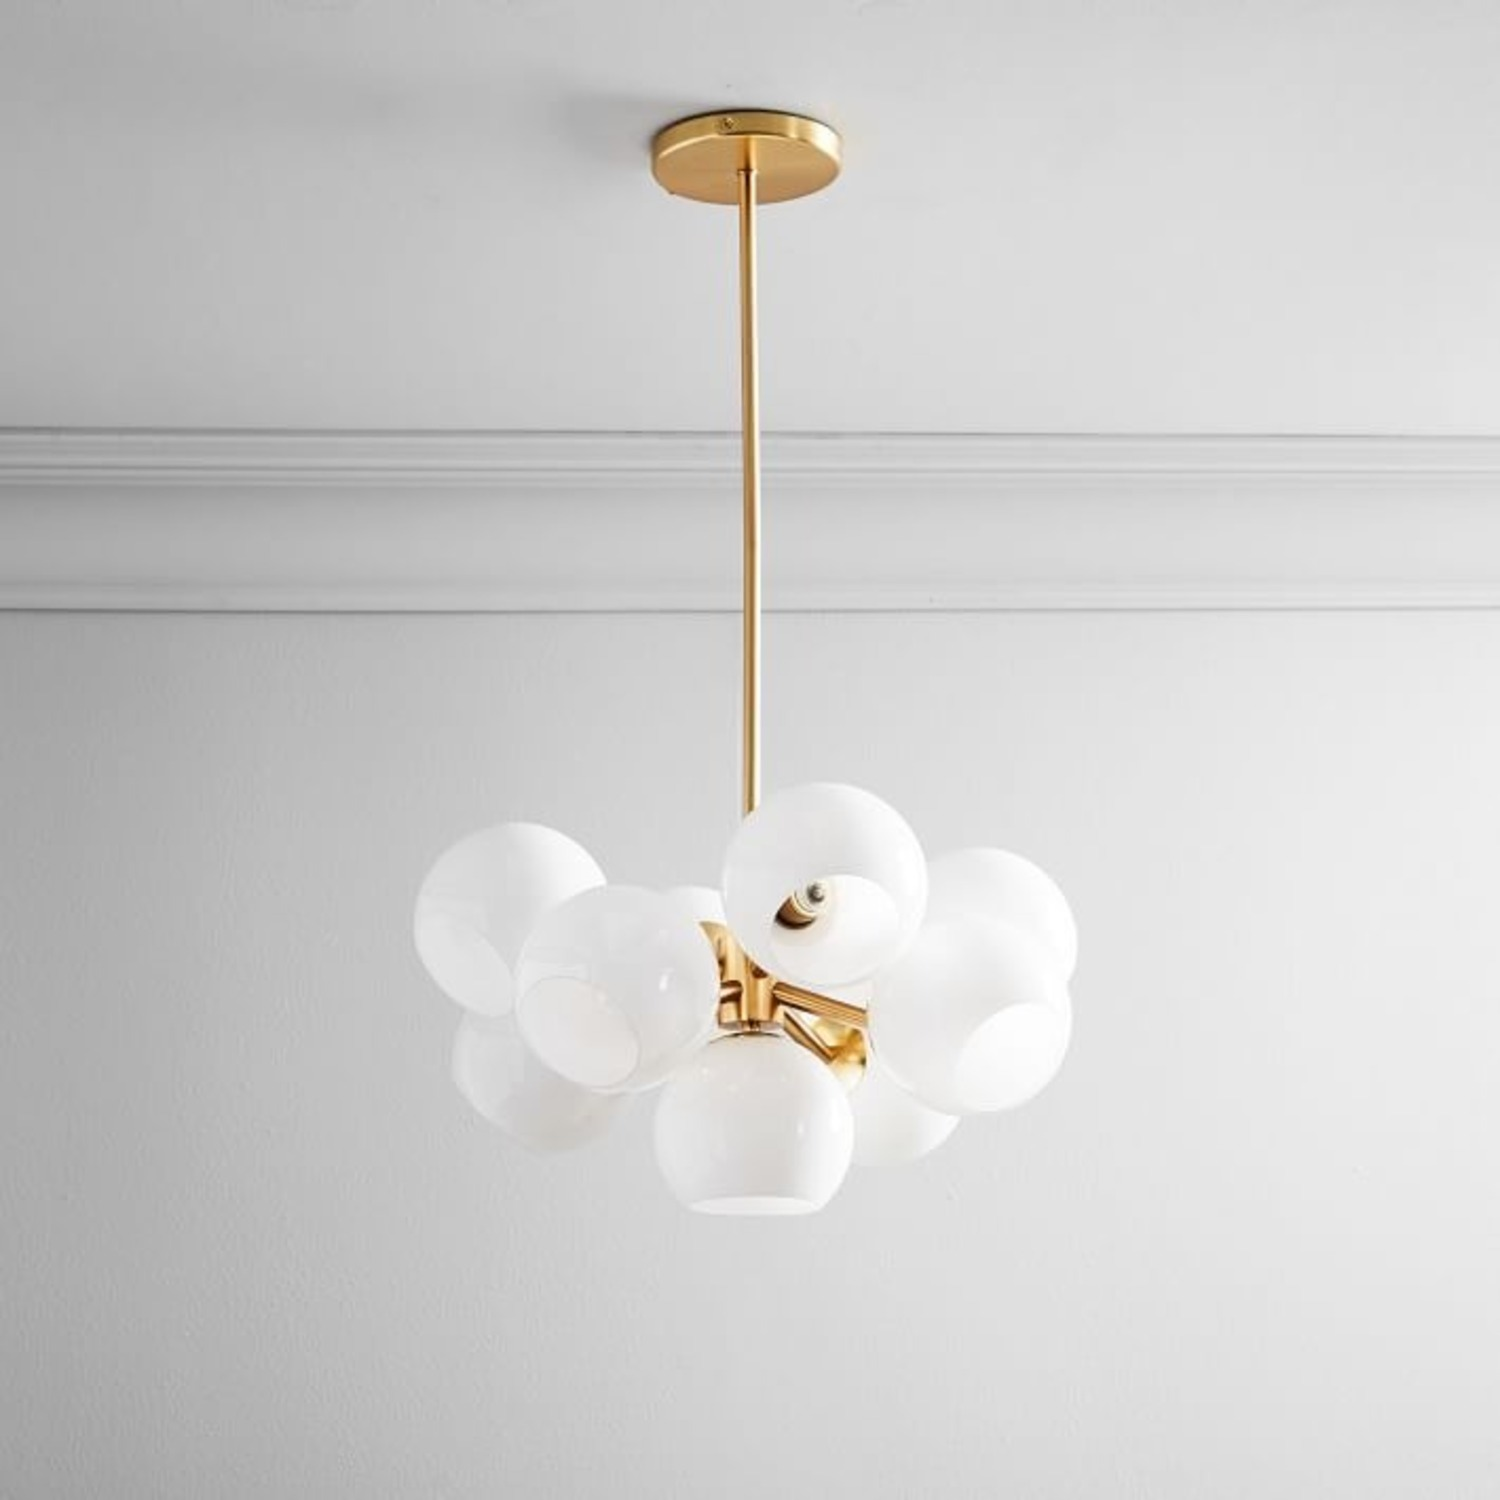 West Elm Staggered Glass Chandelier, Brass - image-2